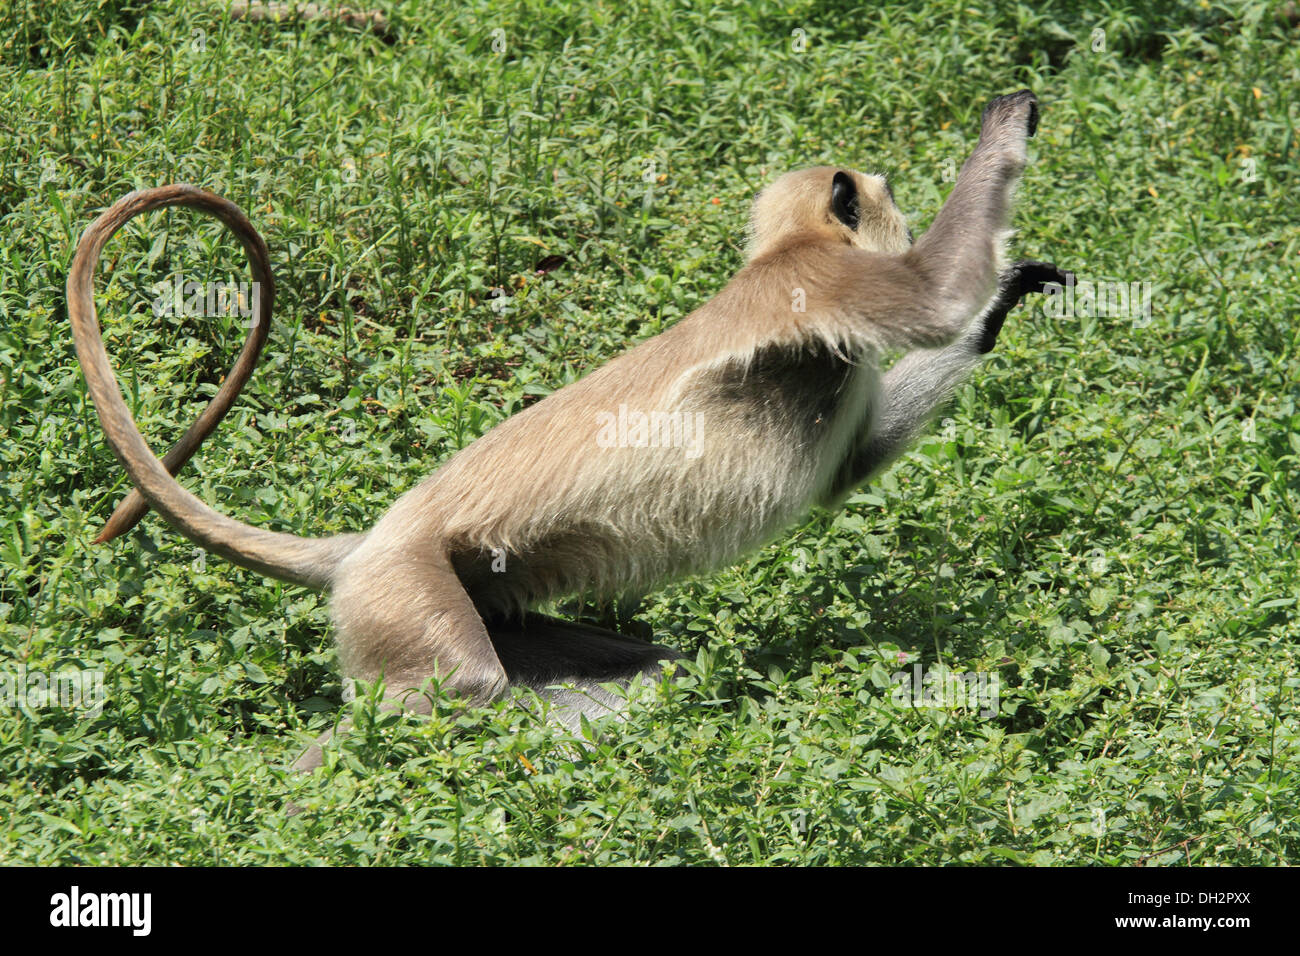 The northern plains gray langur (Semnopithecus entellus) is a species of primate in the Cercopithecidae family - Stock Image